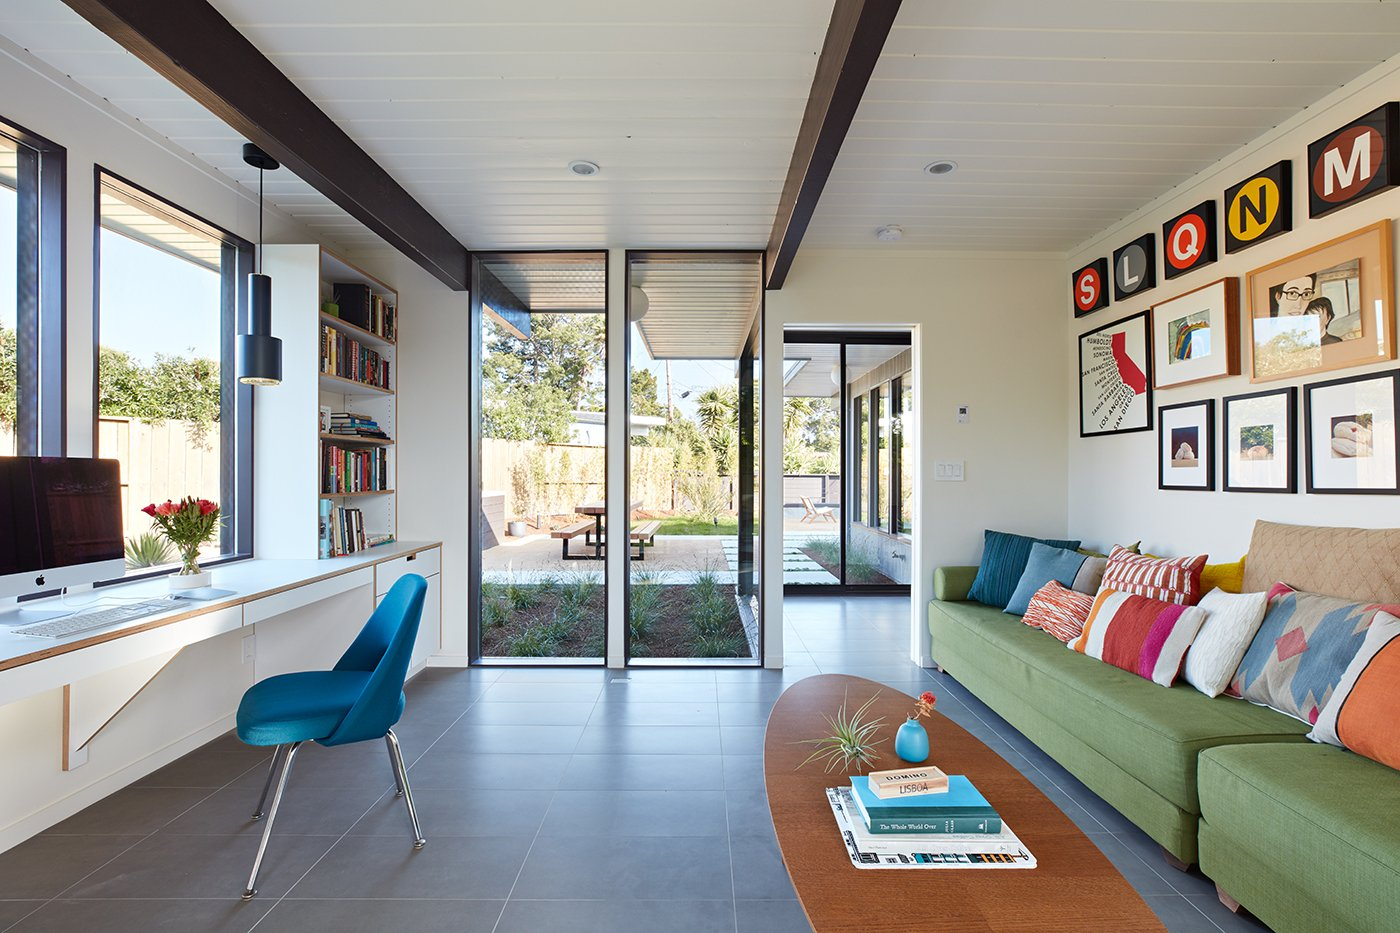 Eichler house in San Mateo Highlands - Klopf architecture - studio